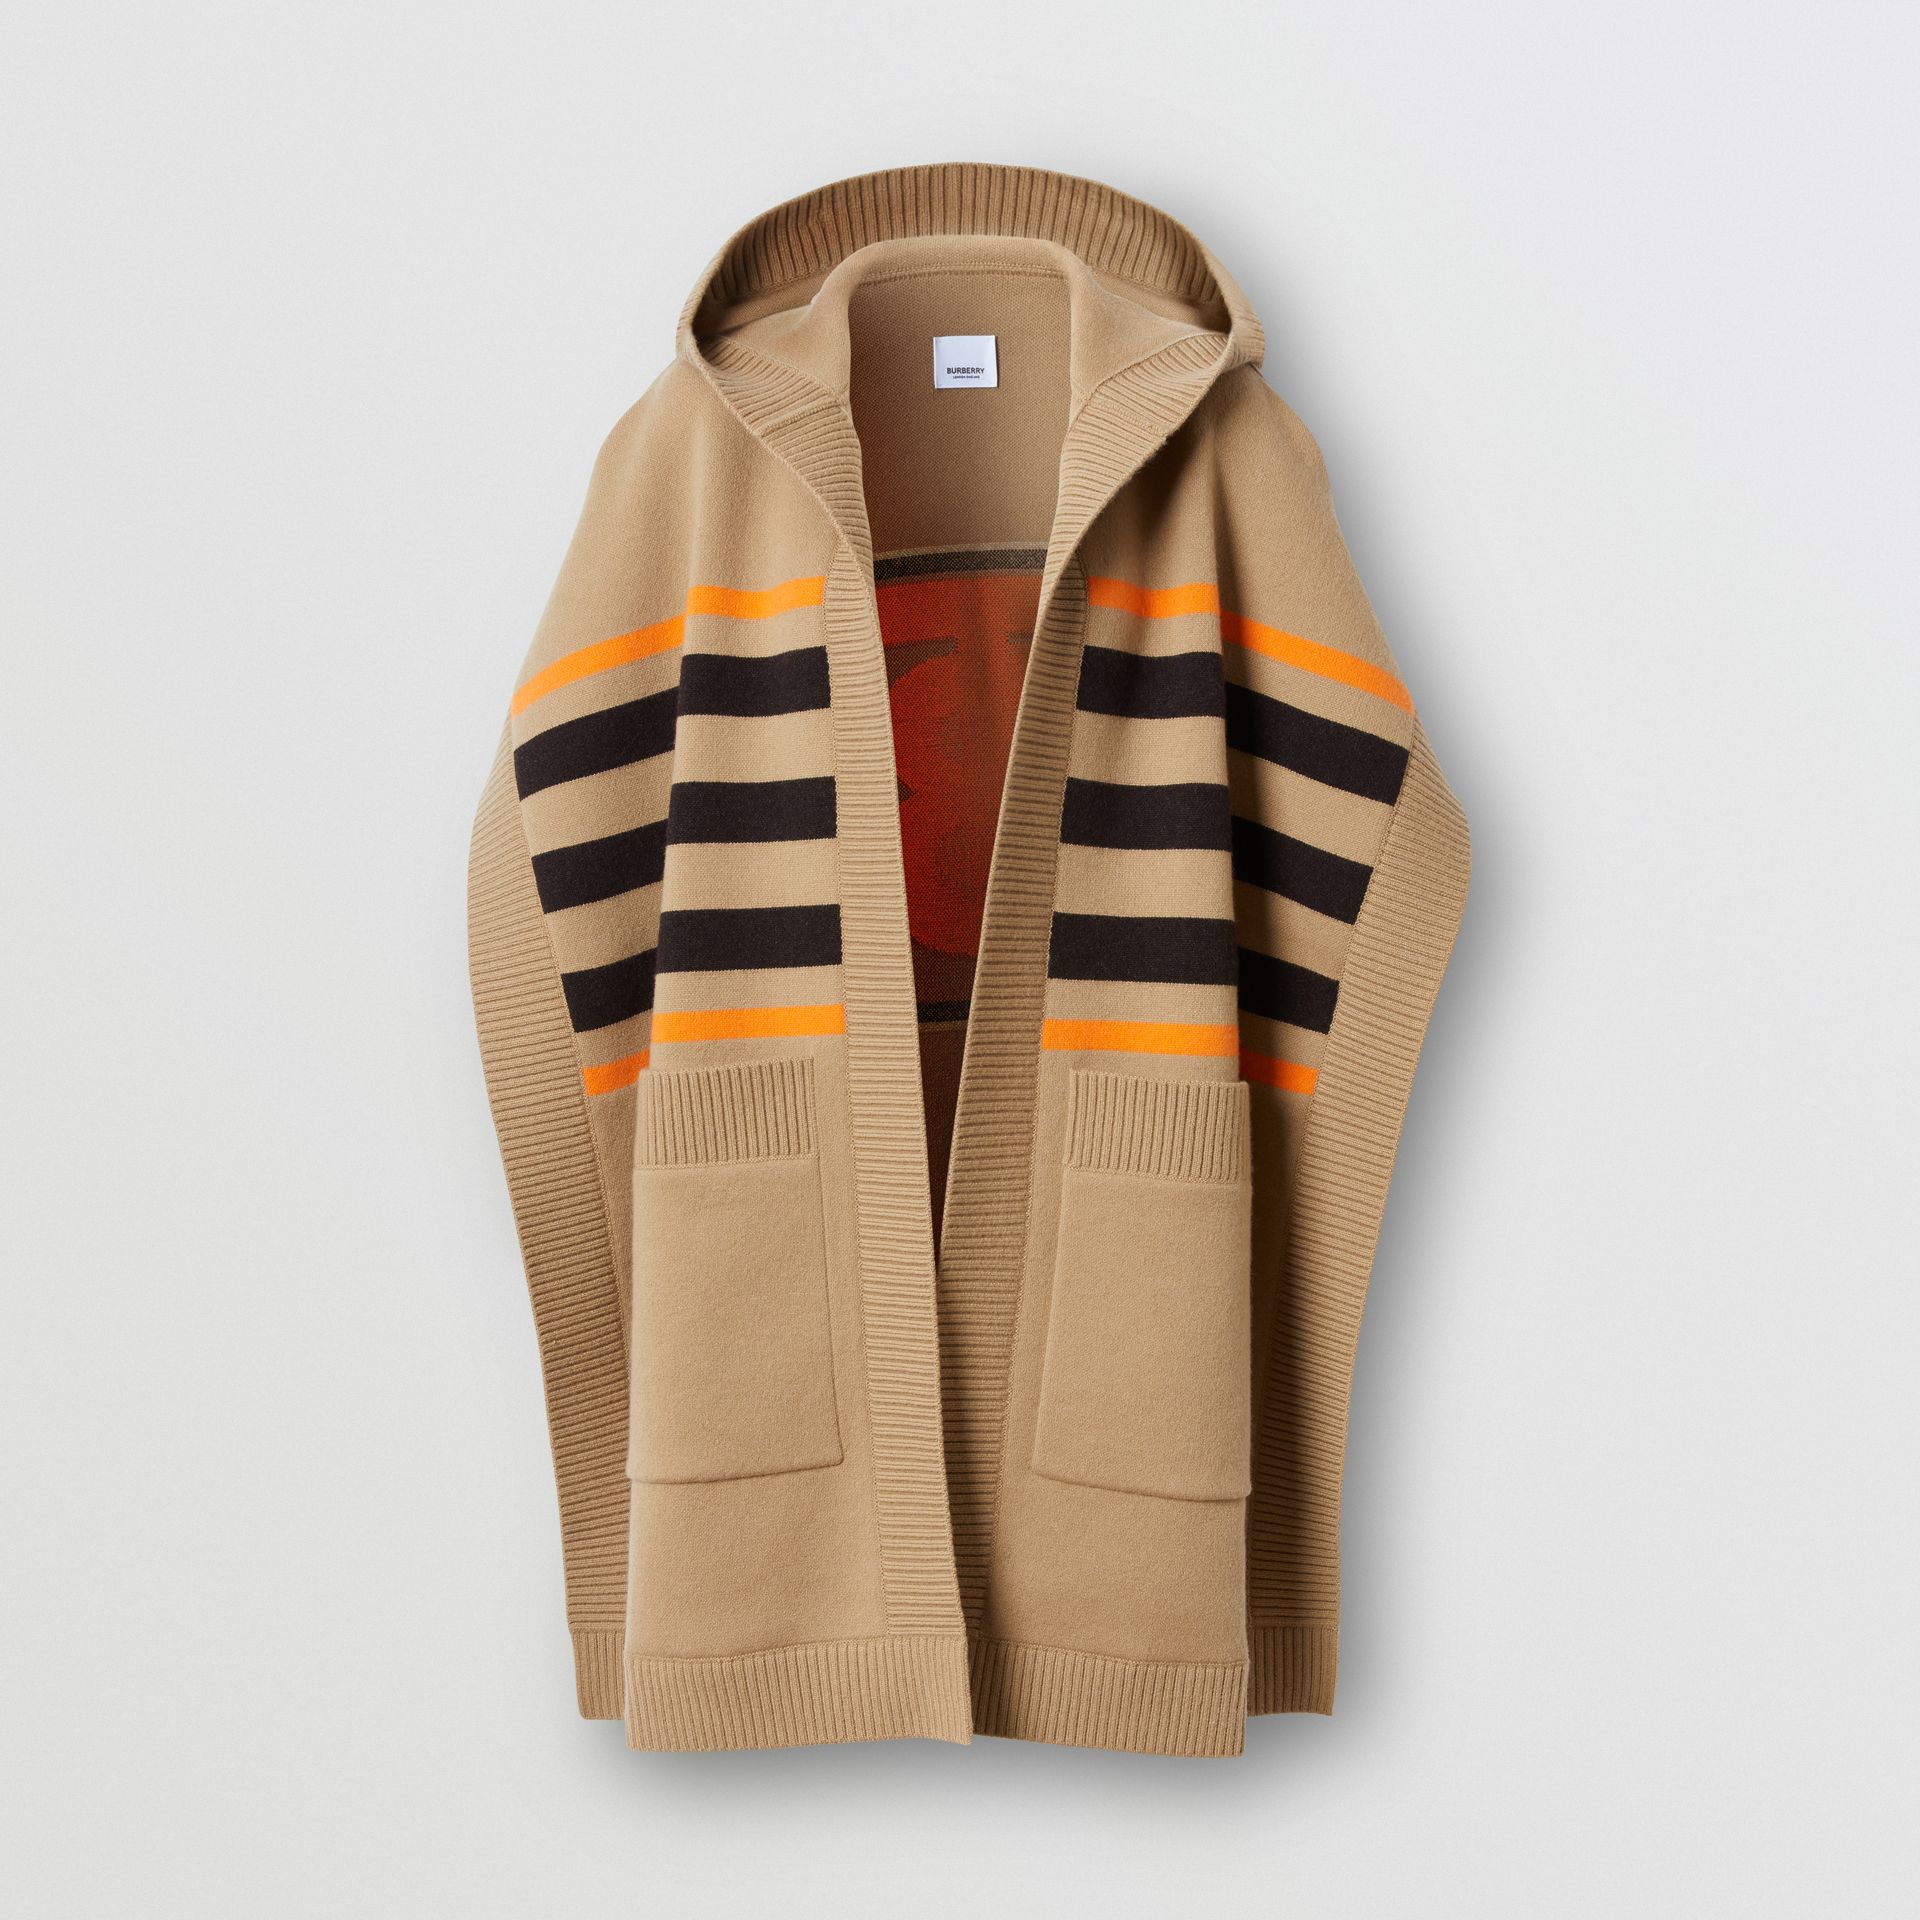 Monogram Motif Intarsia Wool Cashmere Blend Cape in Archive Beige - Women | Burberry - gallery image 3